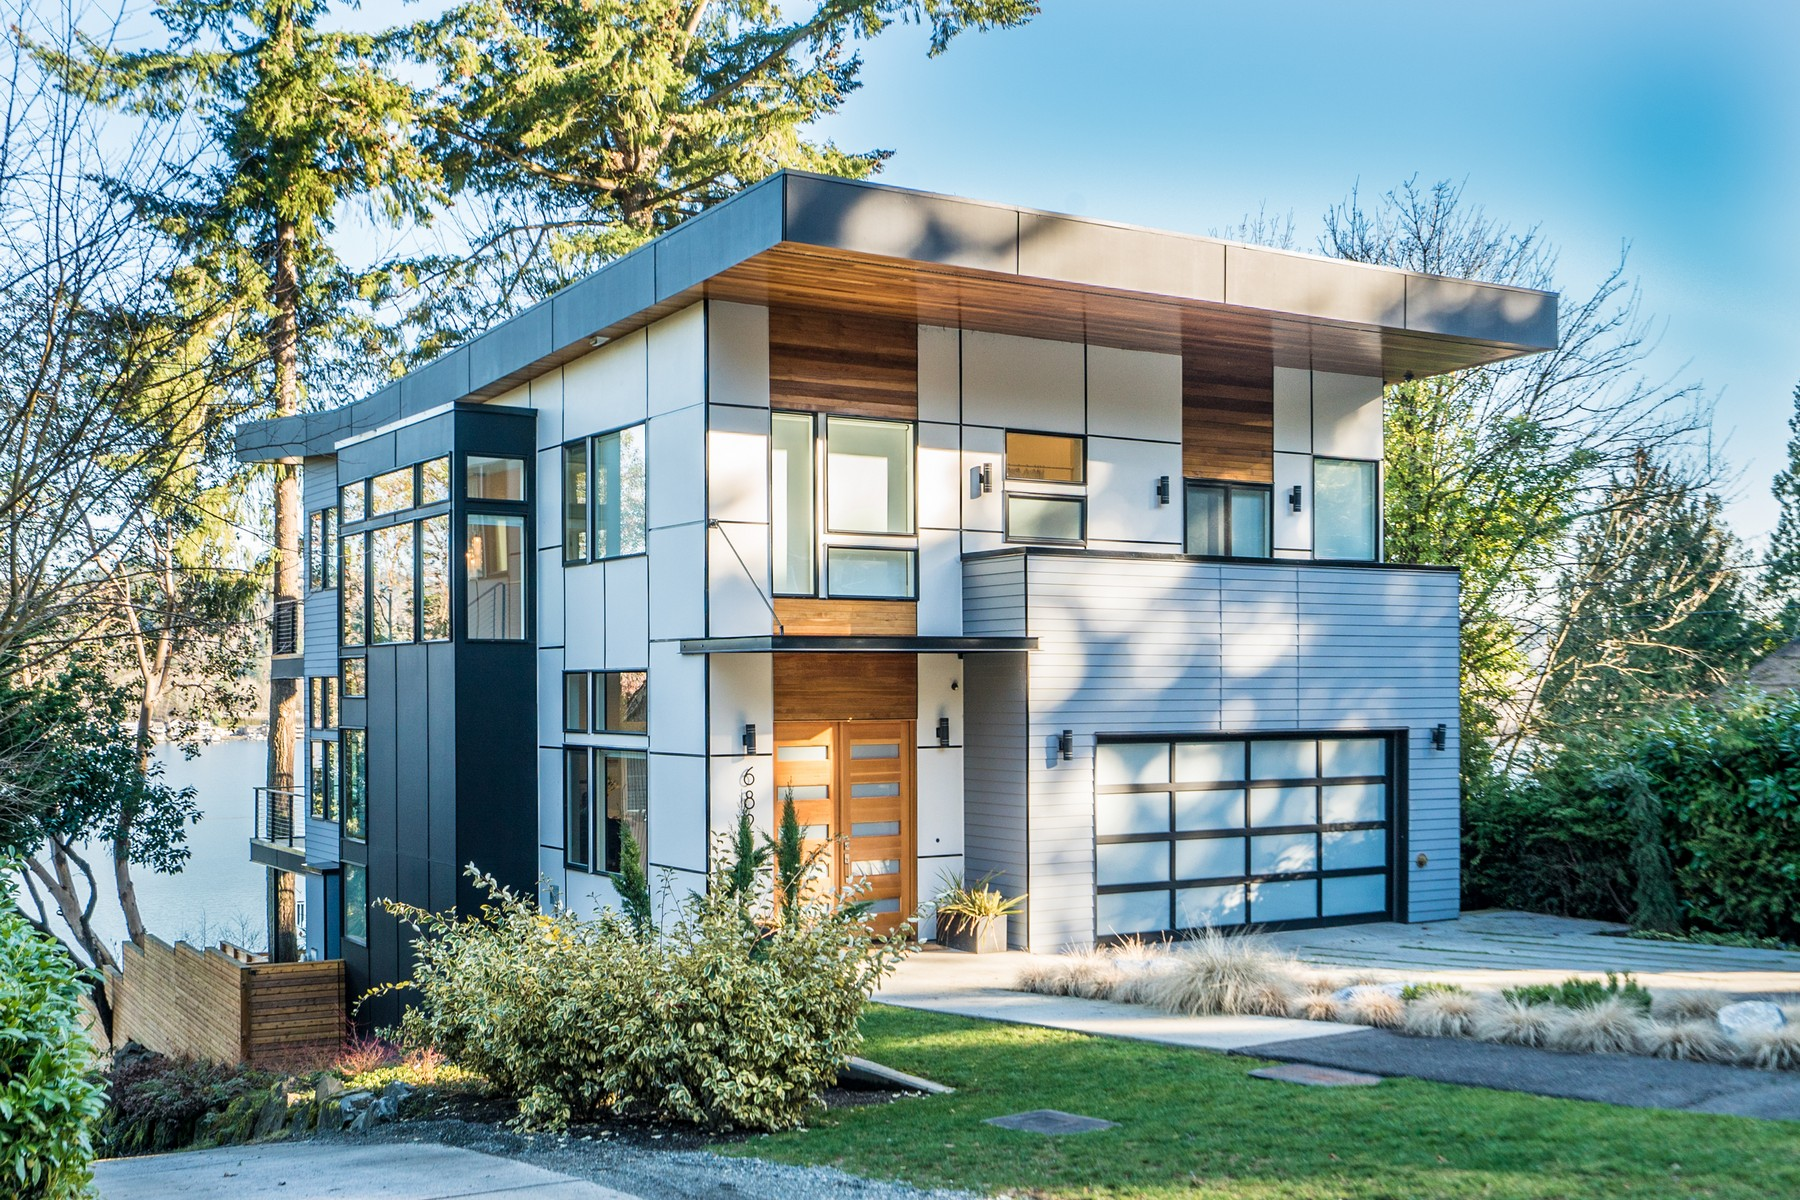 Single Family Home for Sale at Lake View Modern 6822 96th Ave SE Mercer Island, Washington 98040 United States